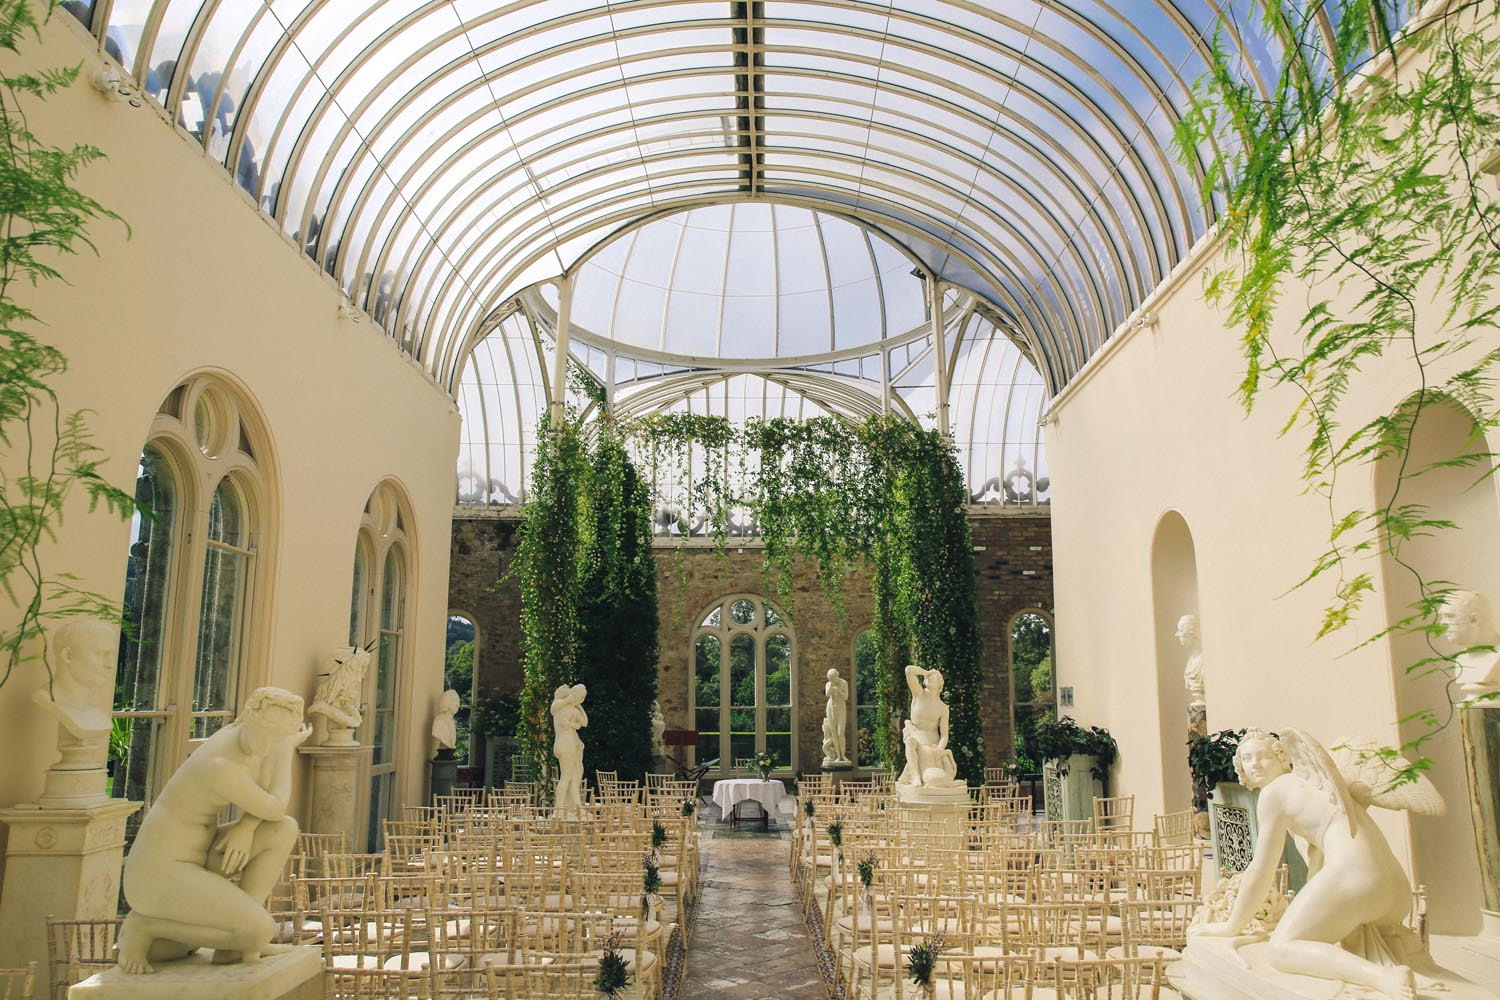 The Orangery at Killruddery House